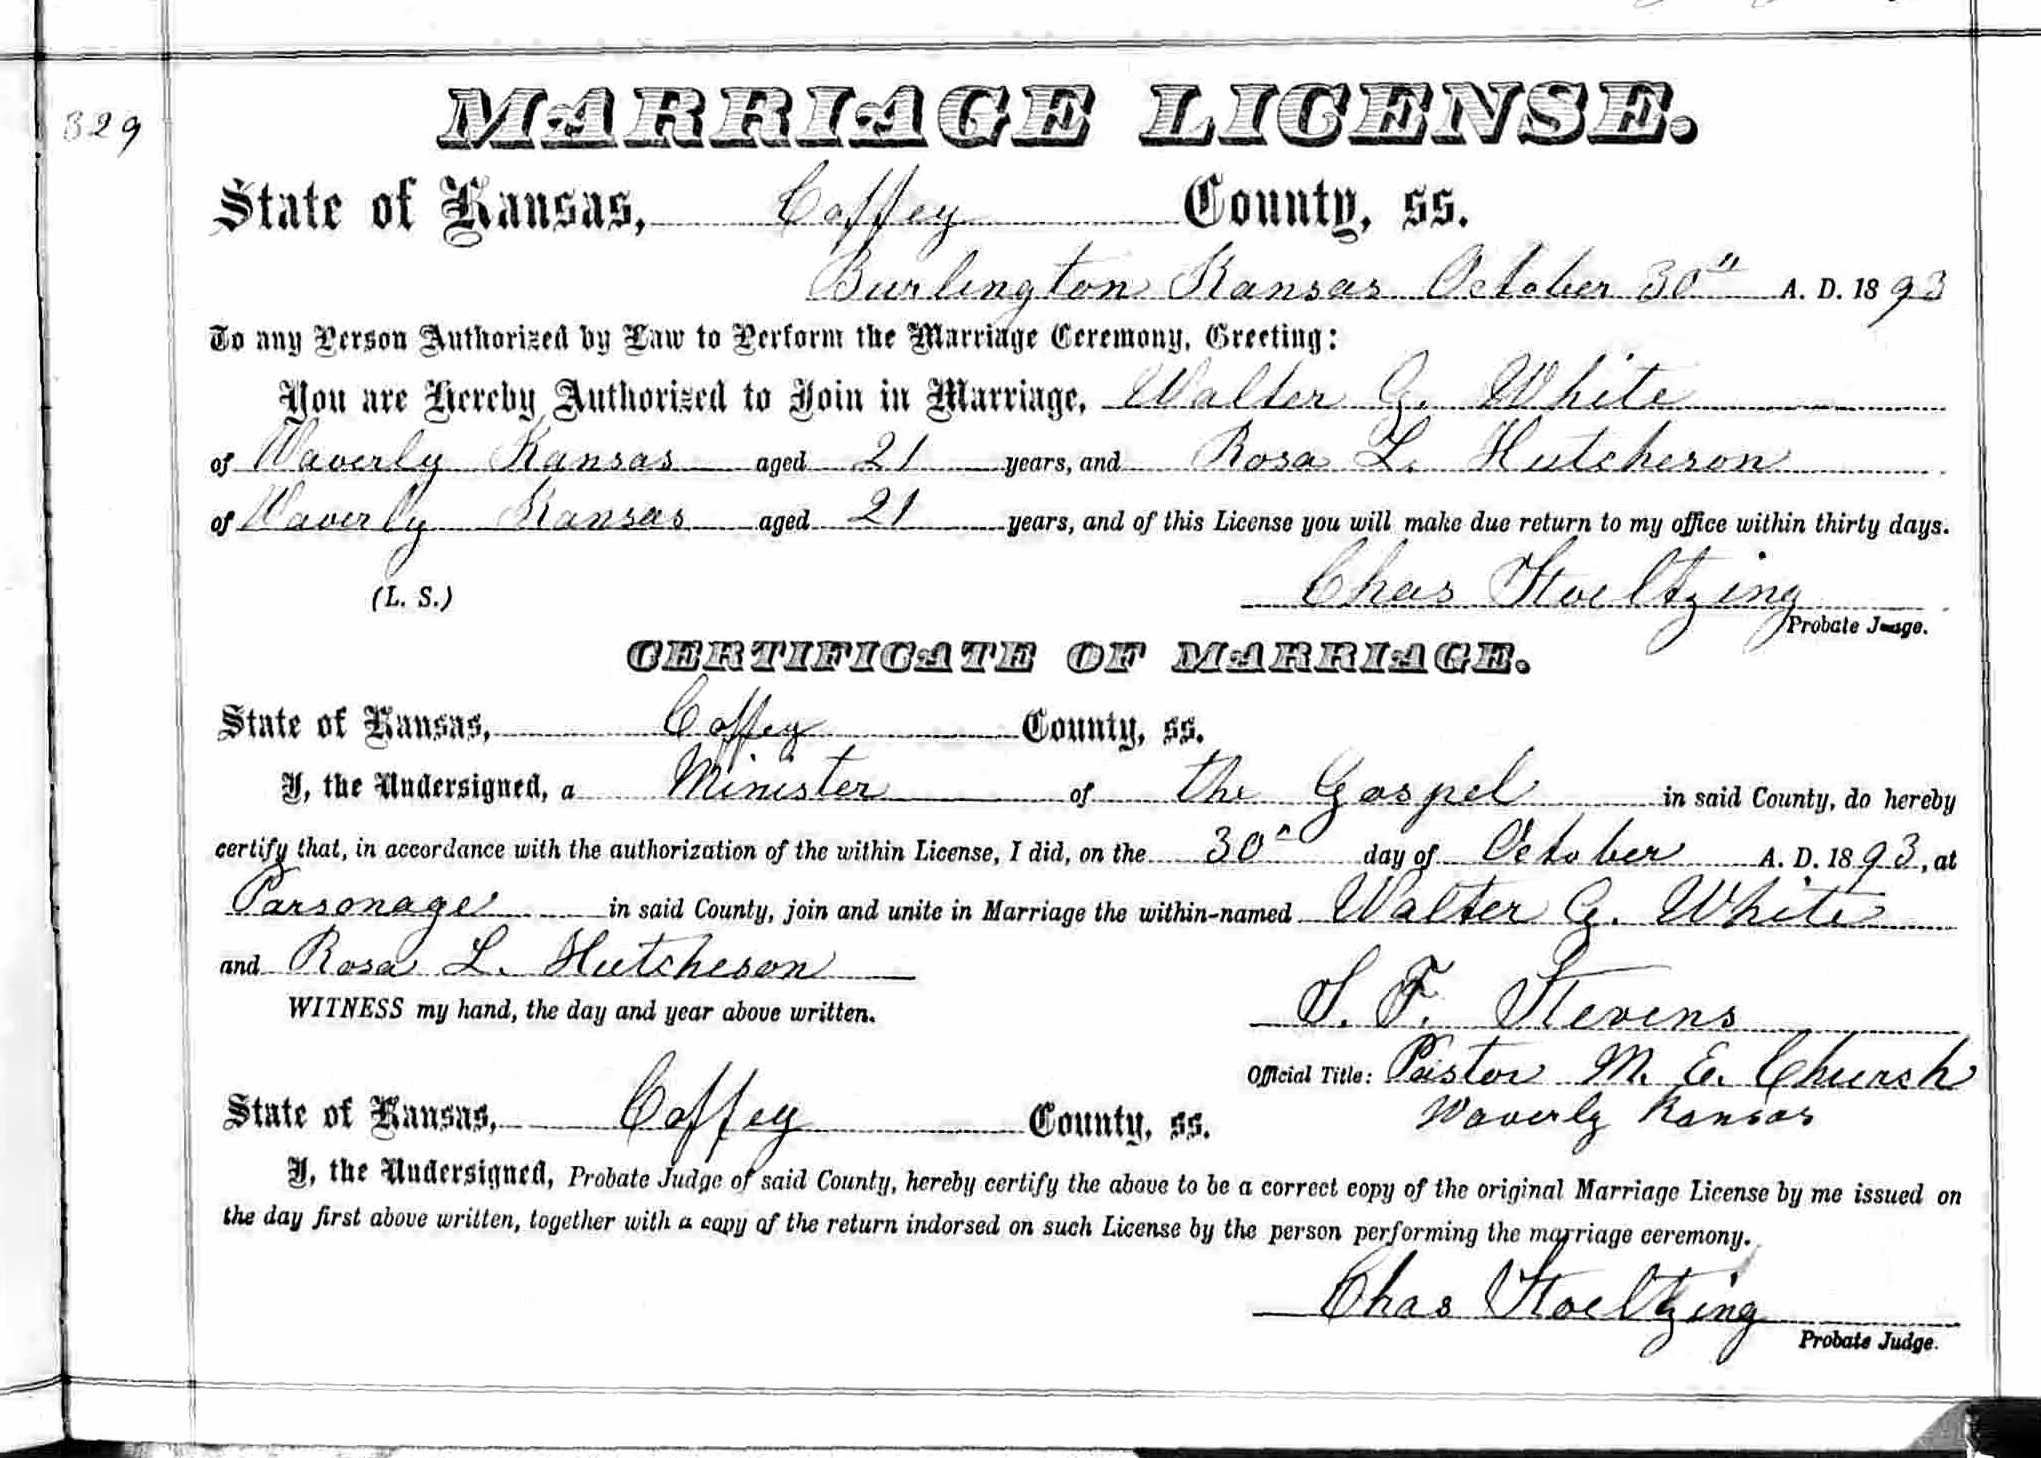 Marriage License of Walter G. White and Rosa L. Hutcheson 10/30/1893